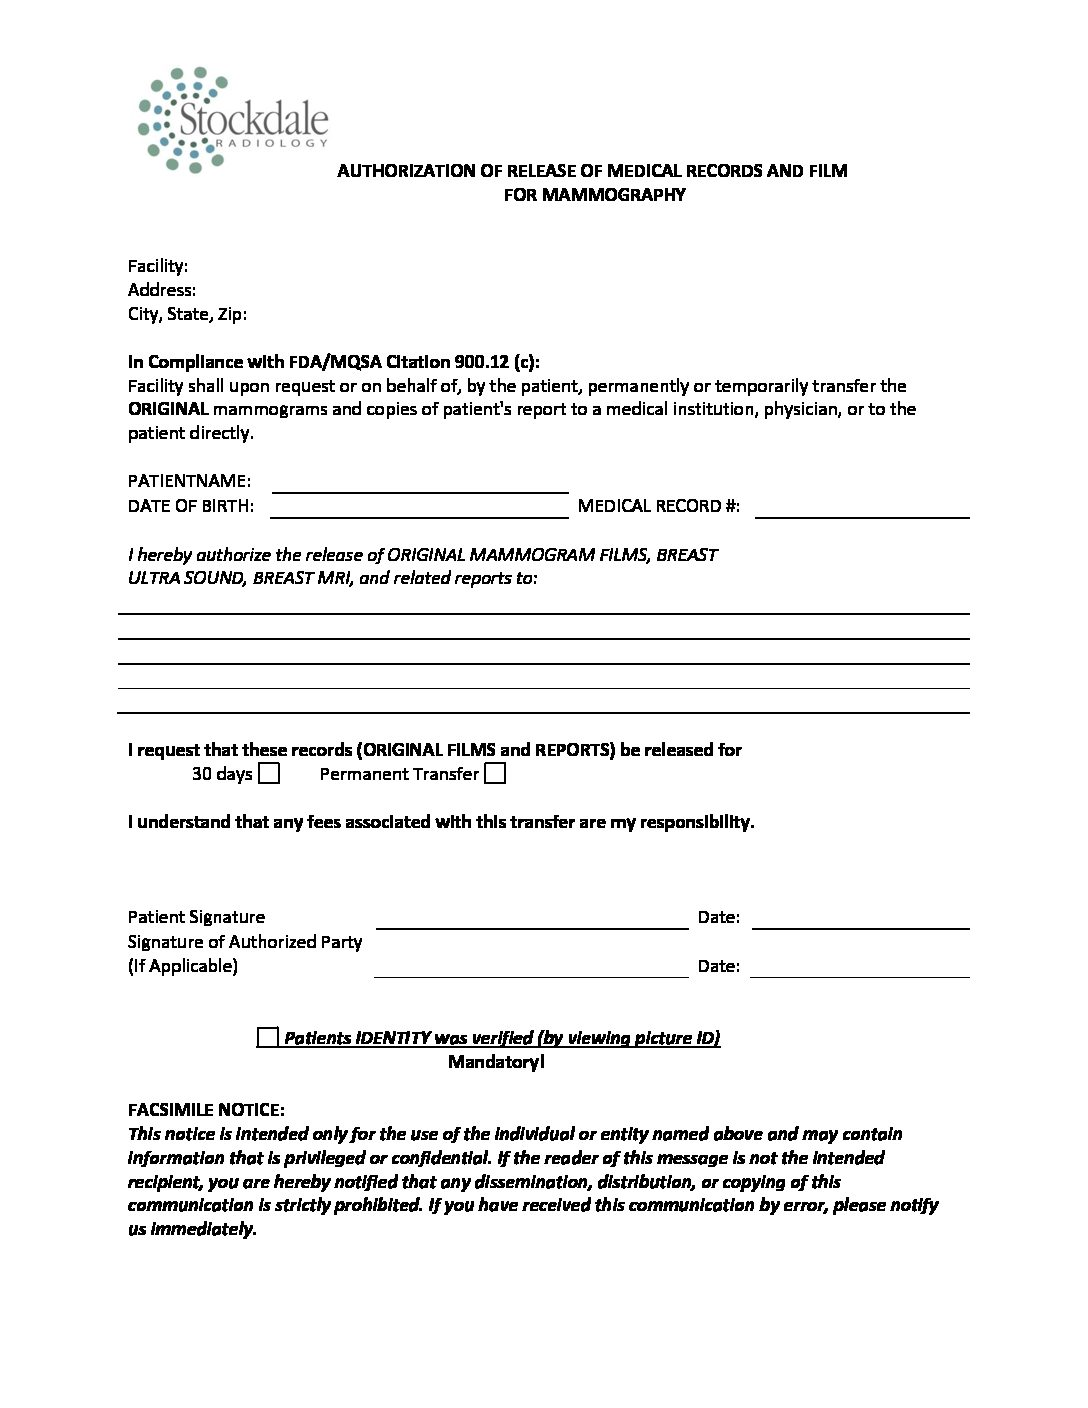 Authorization of Release for Medical Records and Films for Mammography